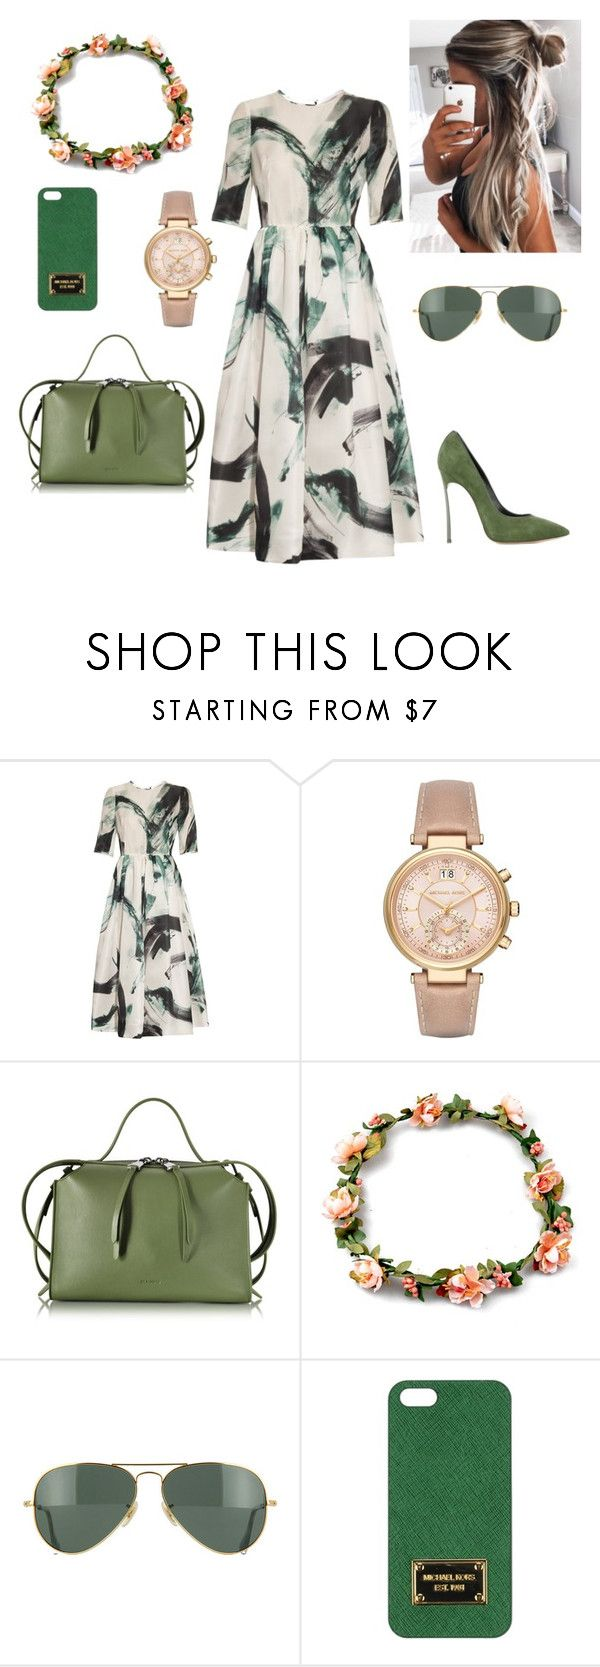 """""""Apostolic Summer OutFit"""" by churchgirl14 ❤ liked on Polyvore featuring Dolce&Gabbana, Michael Kors, Jil Sander, Ray-Ban and Casadei"""